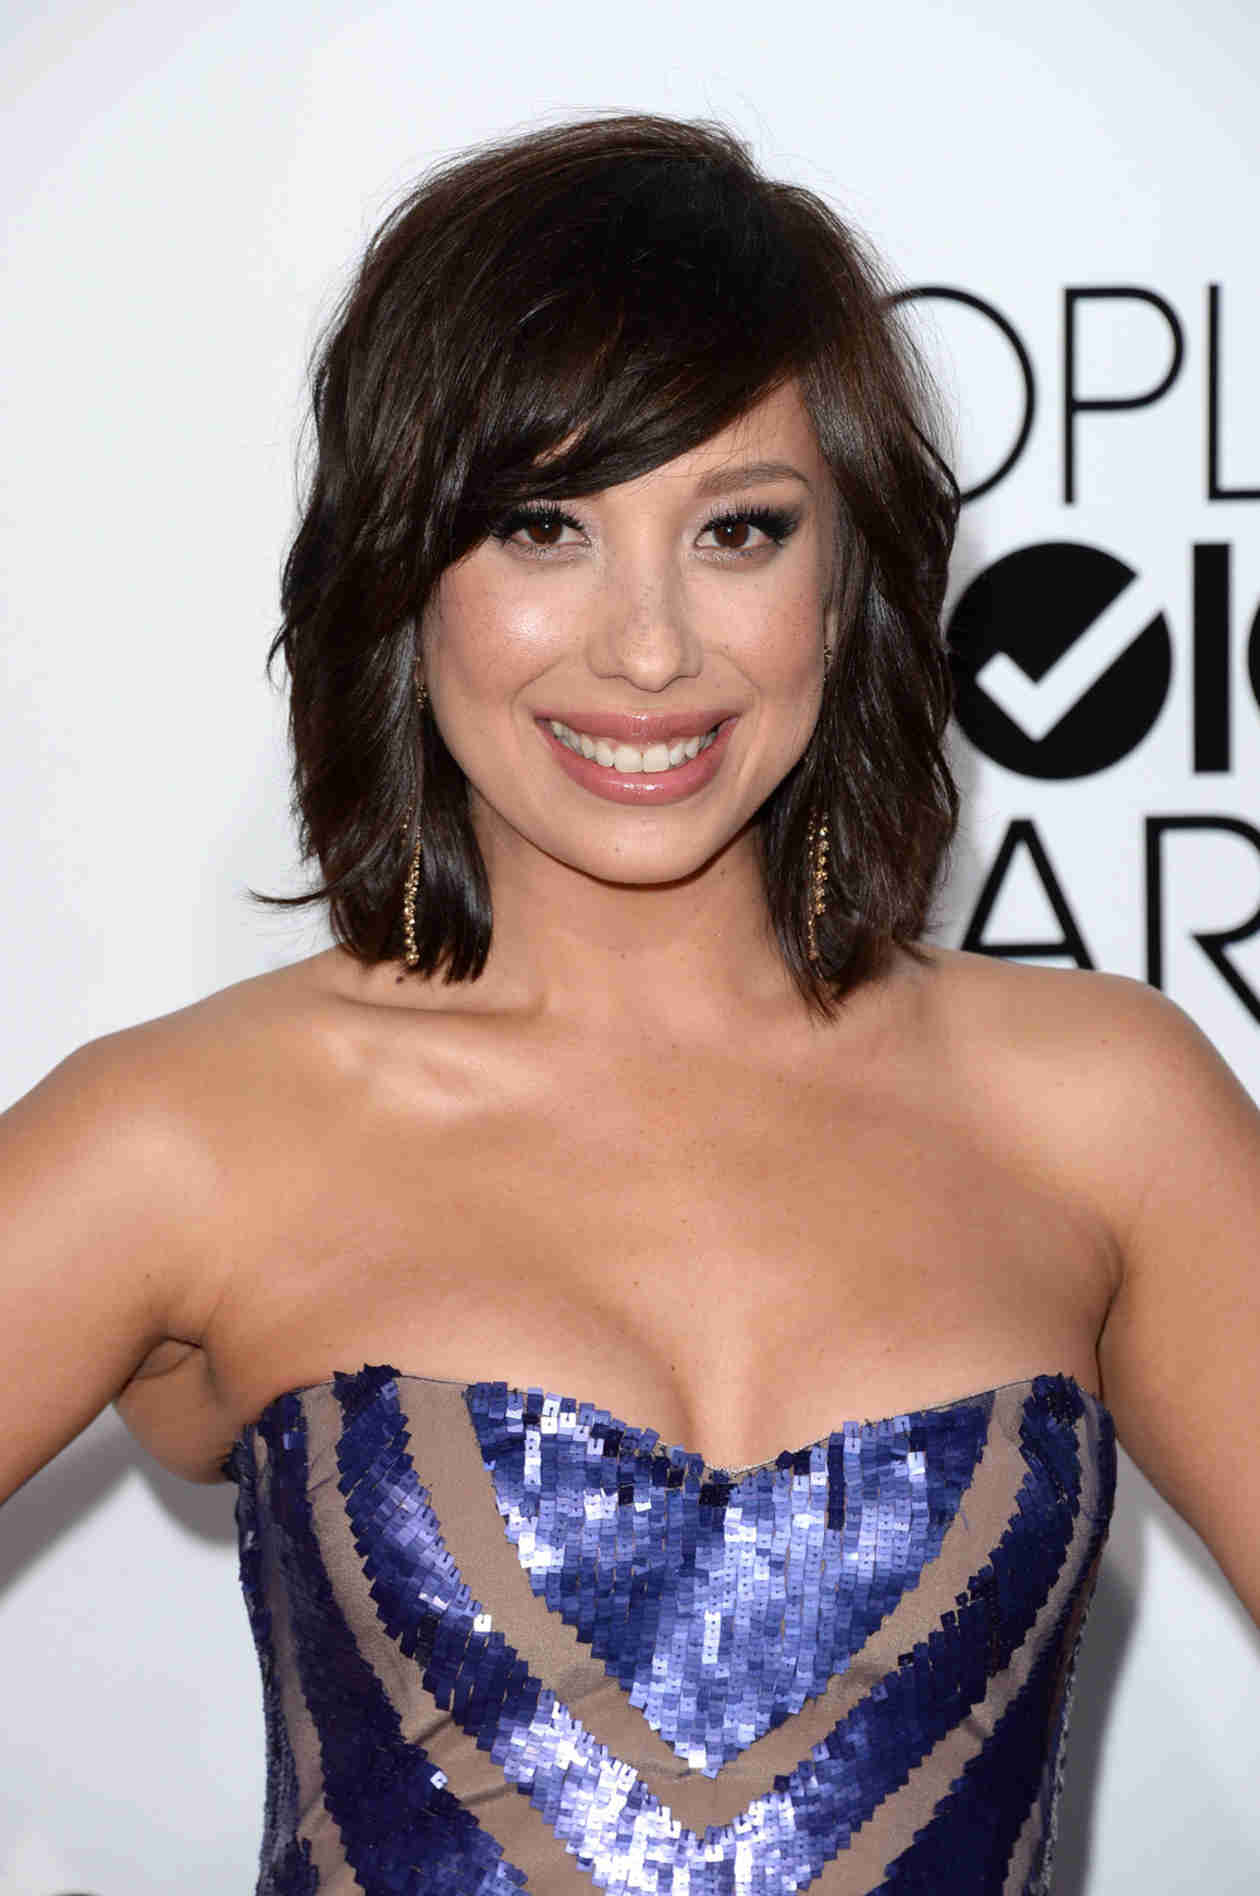 Cheryl Burke Dishes on Her Love Life, Dancing With the Stars Hookups (VIDEOS)